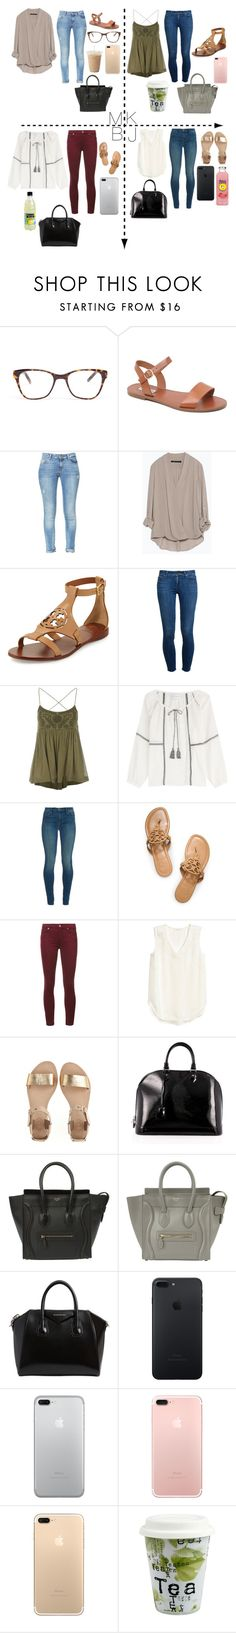 """""""Casual"""" by bustamantemariana99 ❤ liked on Polyvore featuring Prism, Steve Madden, Zara, Tory Burch, Paige Denim, Free People, Velvet, J Brand, 7 For All Mankind and Sol Sana"""